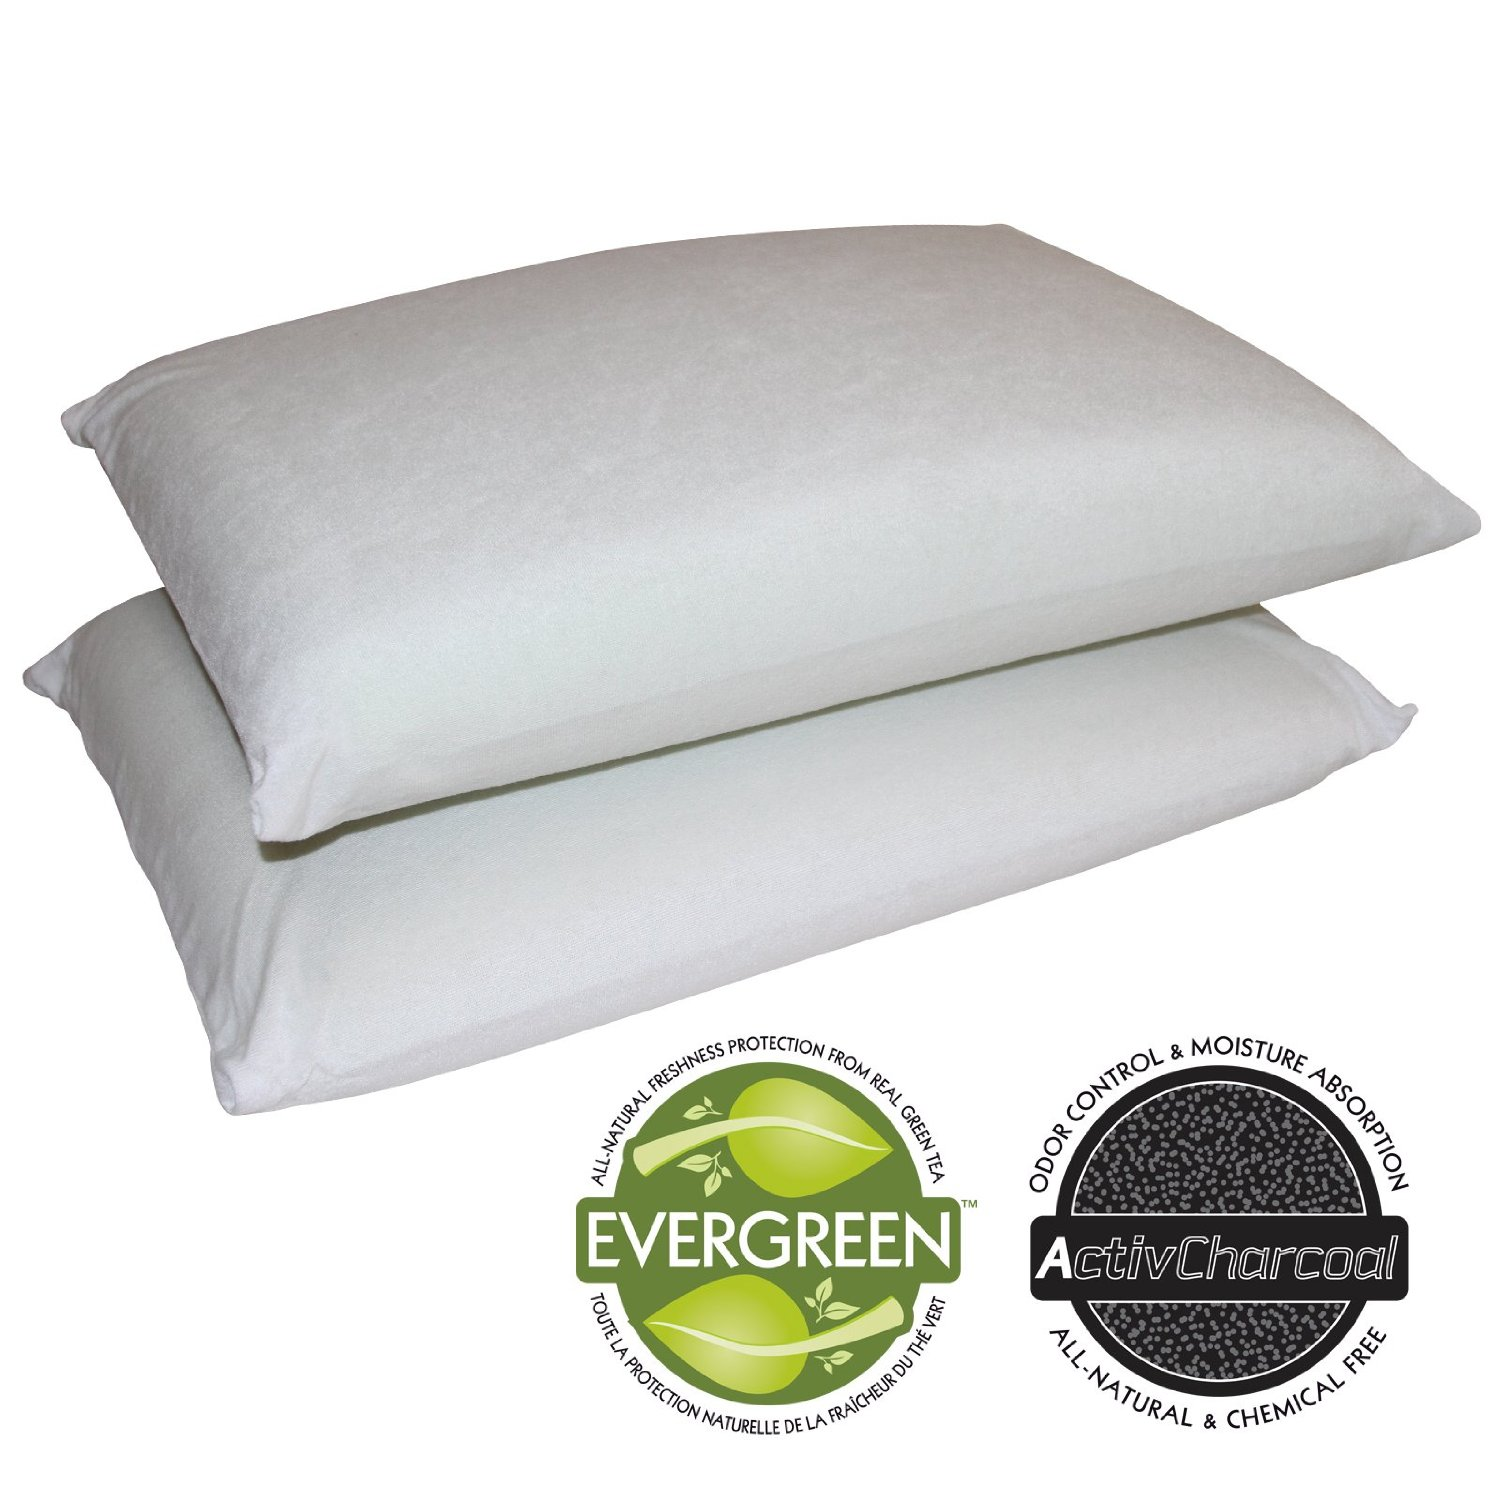 Sleep Master 2-Pack Traditional Memory Foam Pillows review